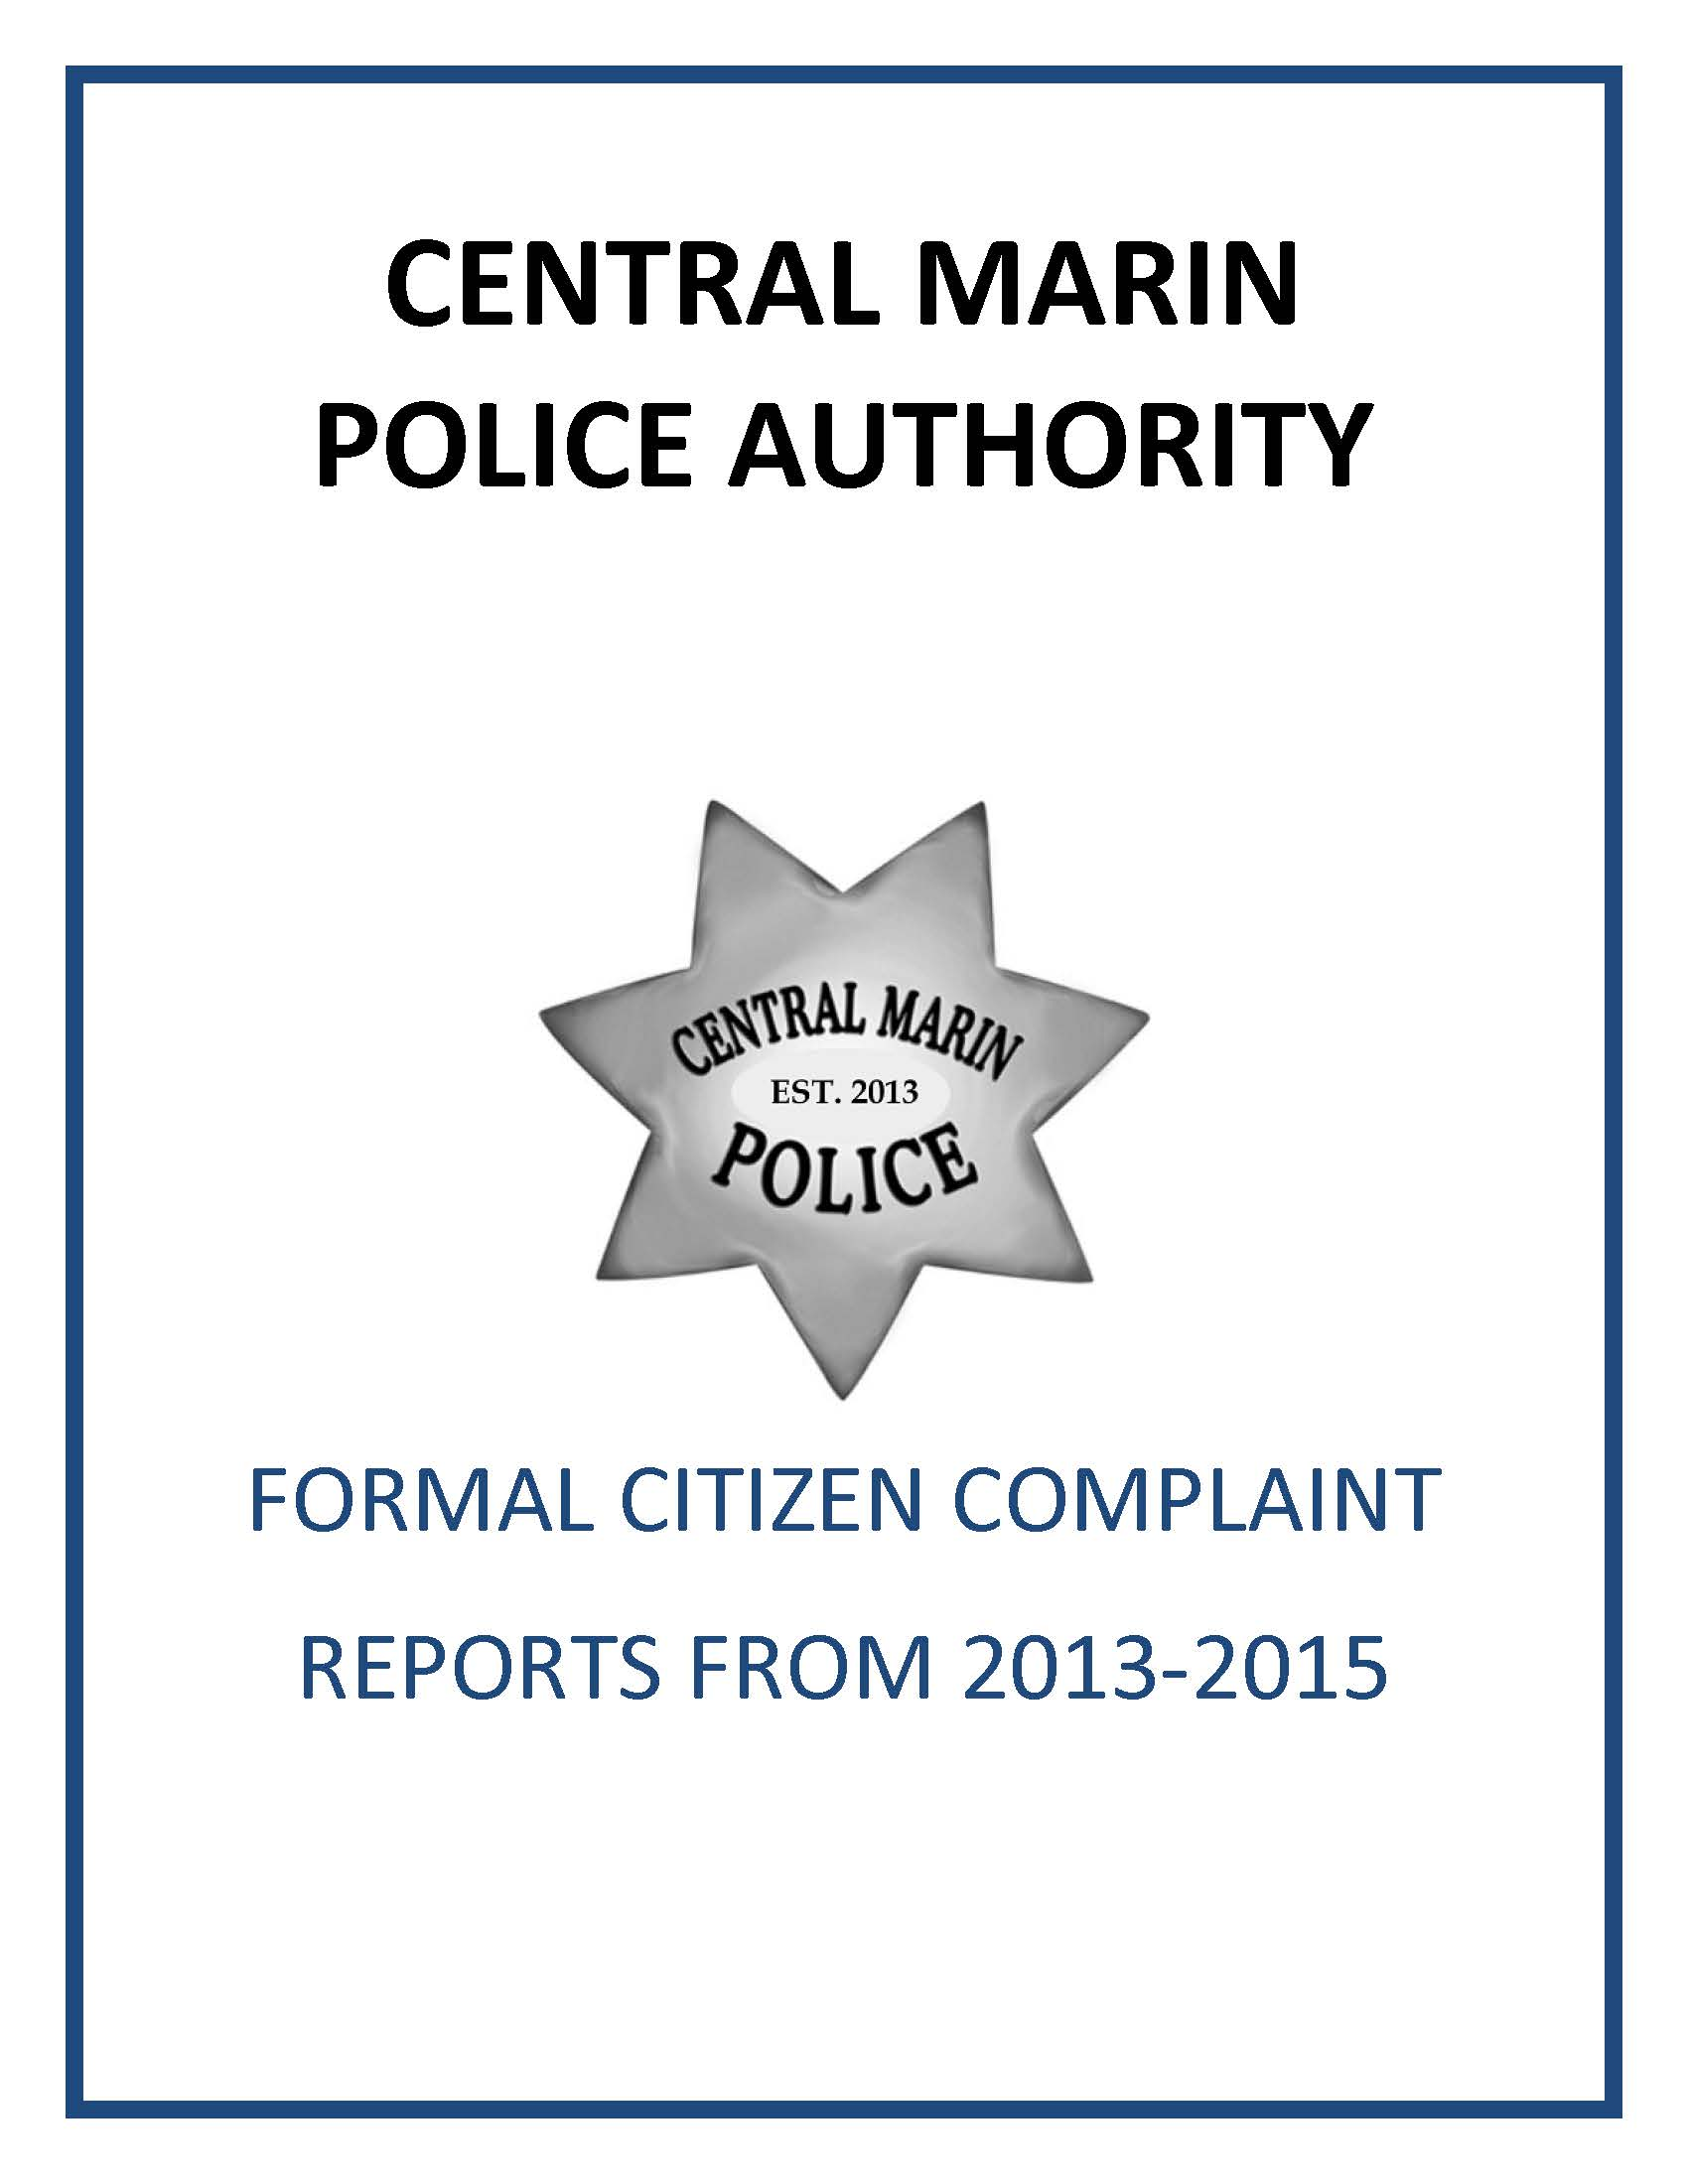 CITIZEN COMPLAINT COVER